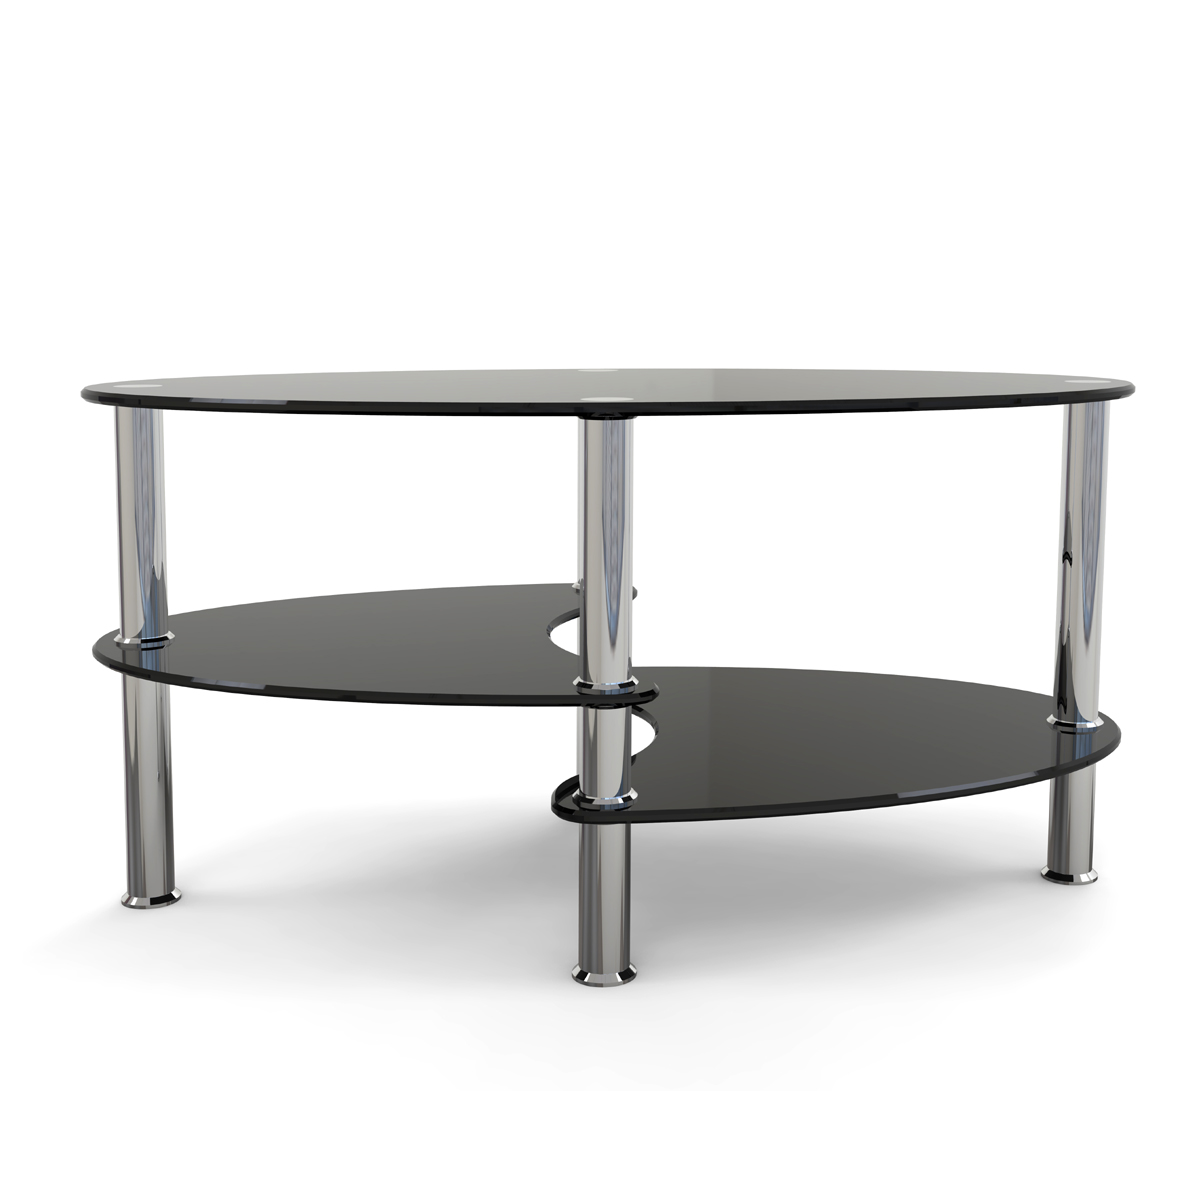 Ryan rove elm 38 inch oval two tier black glass coffee table Black coffee table with glass